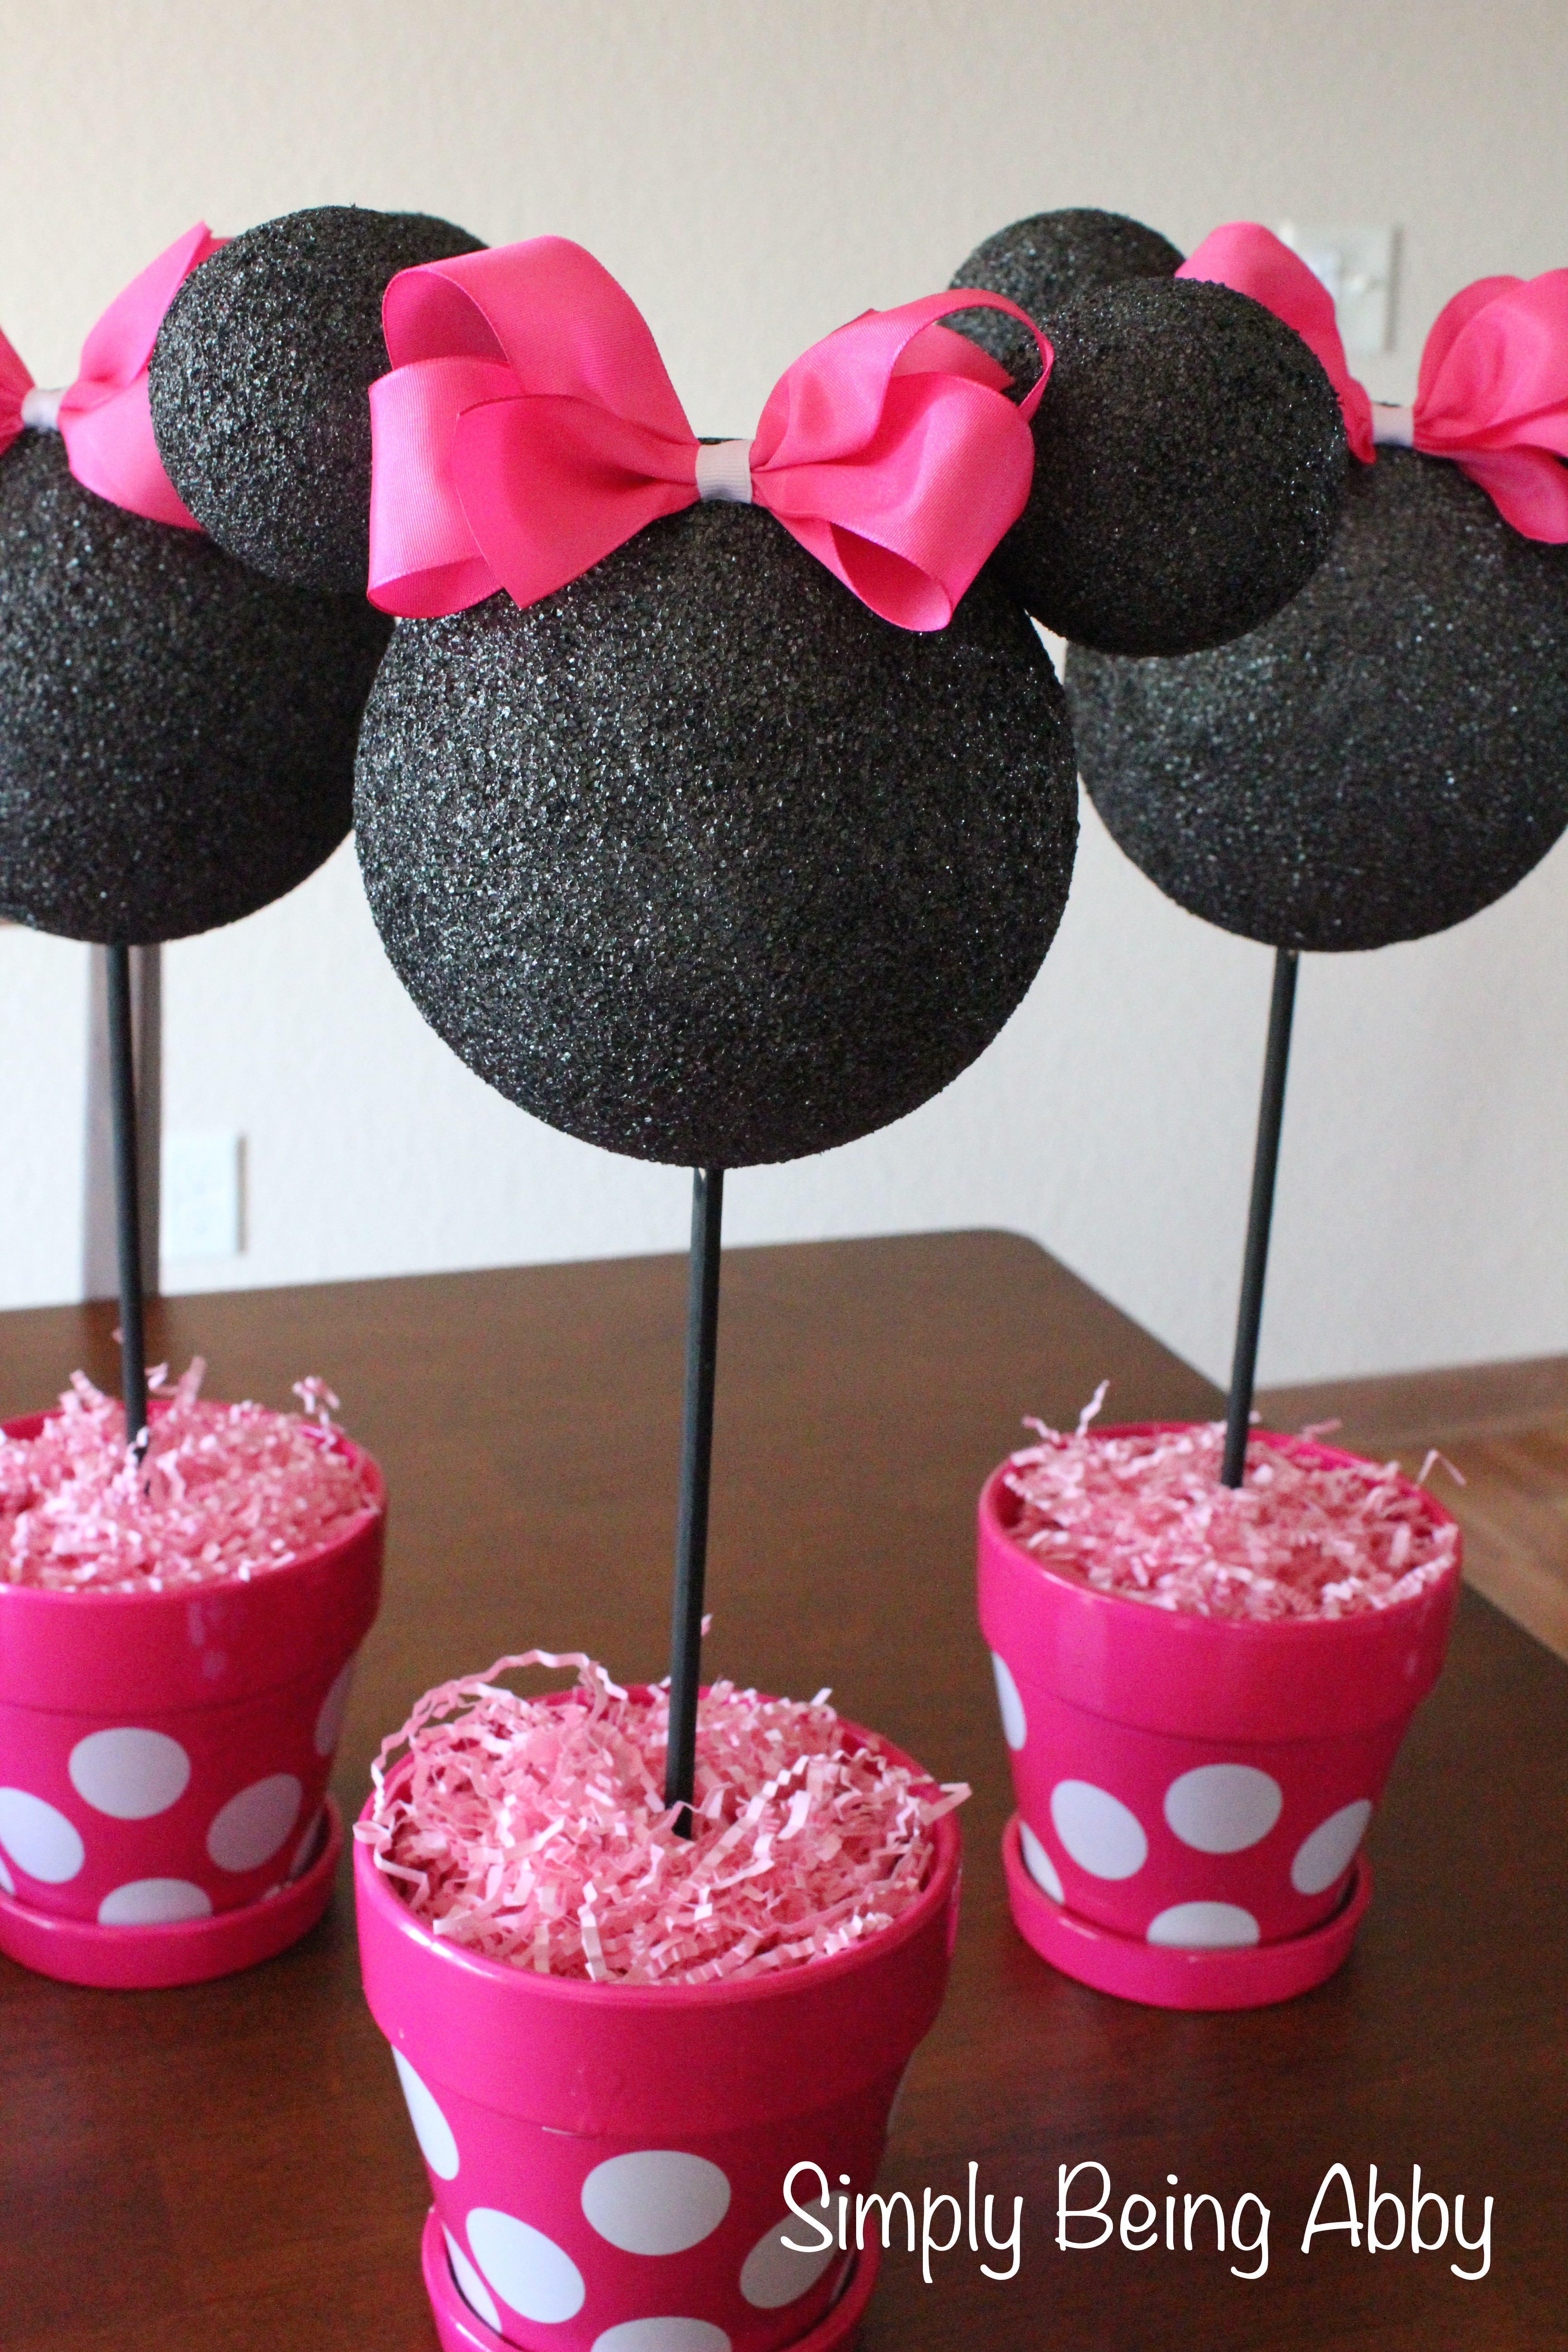 Best ideas about DIY Minnie Mouse Decorations . Save or Pin Minnie Mouse Centerpiece Decorations – Simply Being Abby Now.